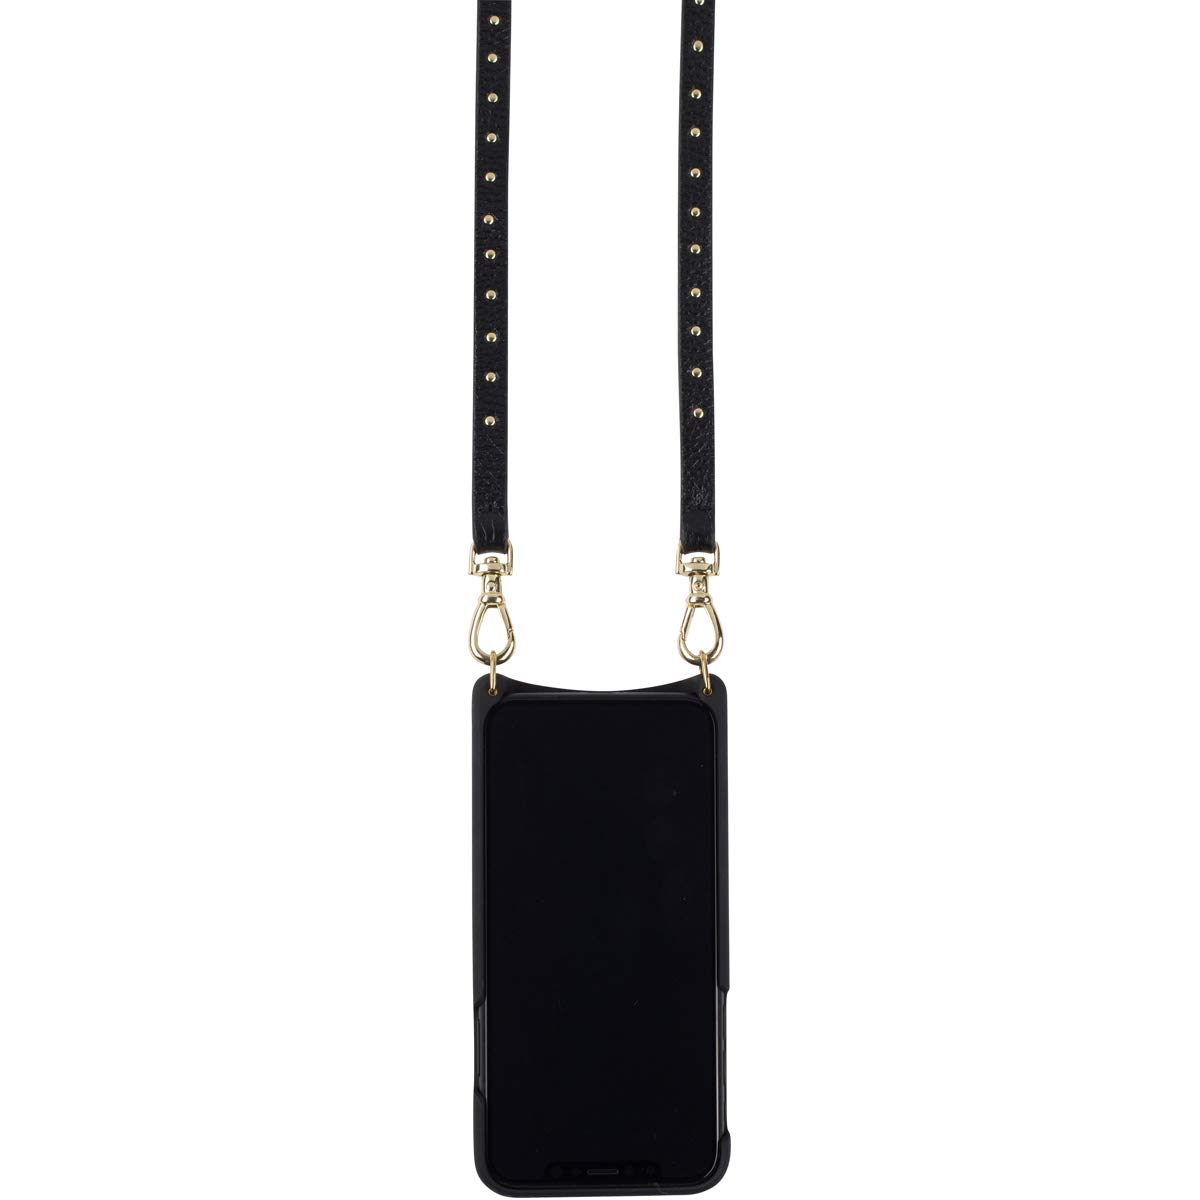 Bandolier [Nicole] Crossbody Phone Case and Wallet - Compatible with iPhone 8/7 / 6 - Black Leather with Gold Accent by Bandolier (Image #3)